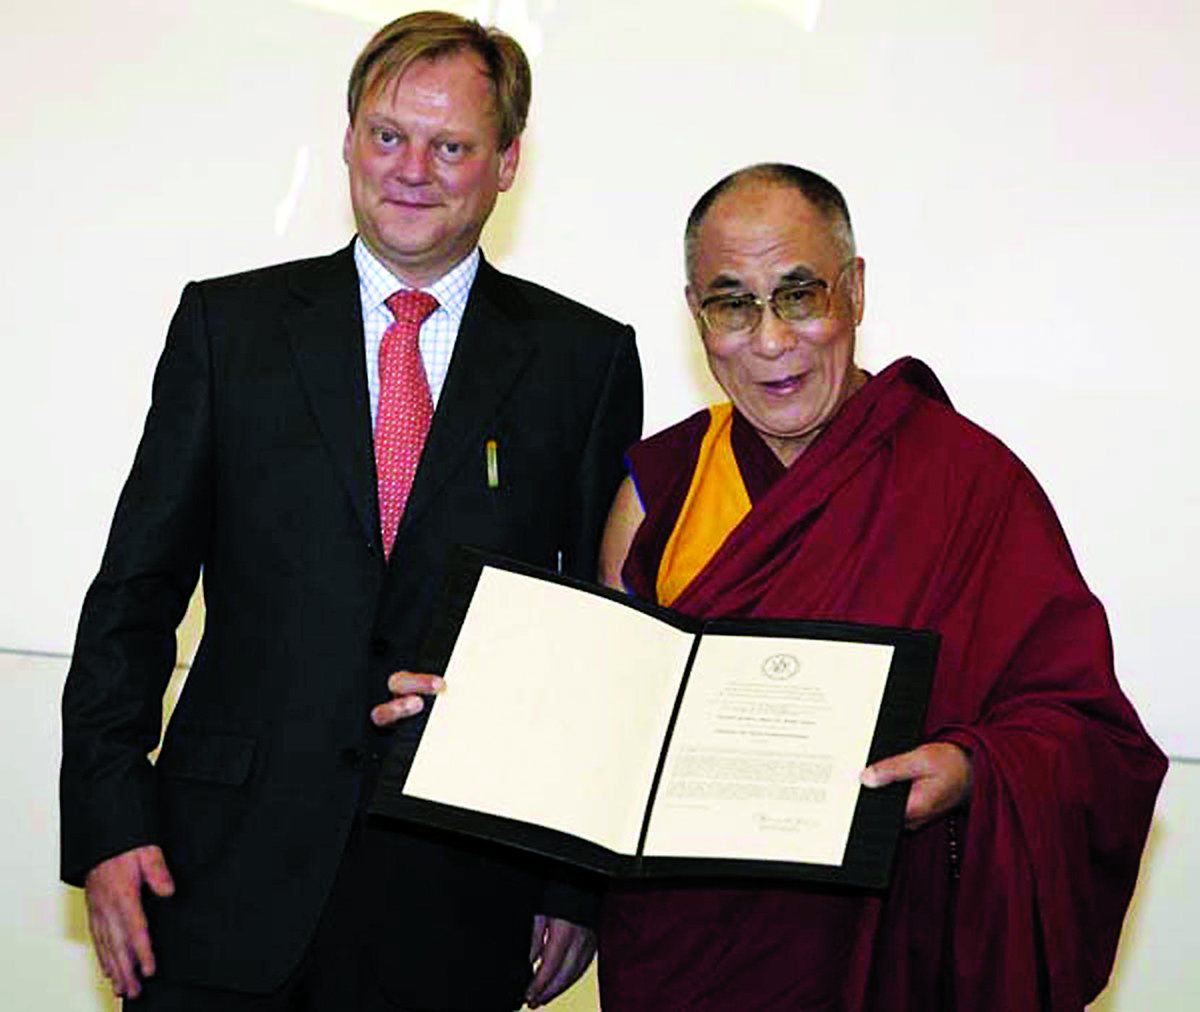 His Holiness the Dalai Lama receiving the University of Muenster's honorary doctorate degree in natural science, Germany, 20 September 2007